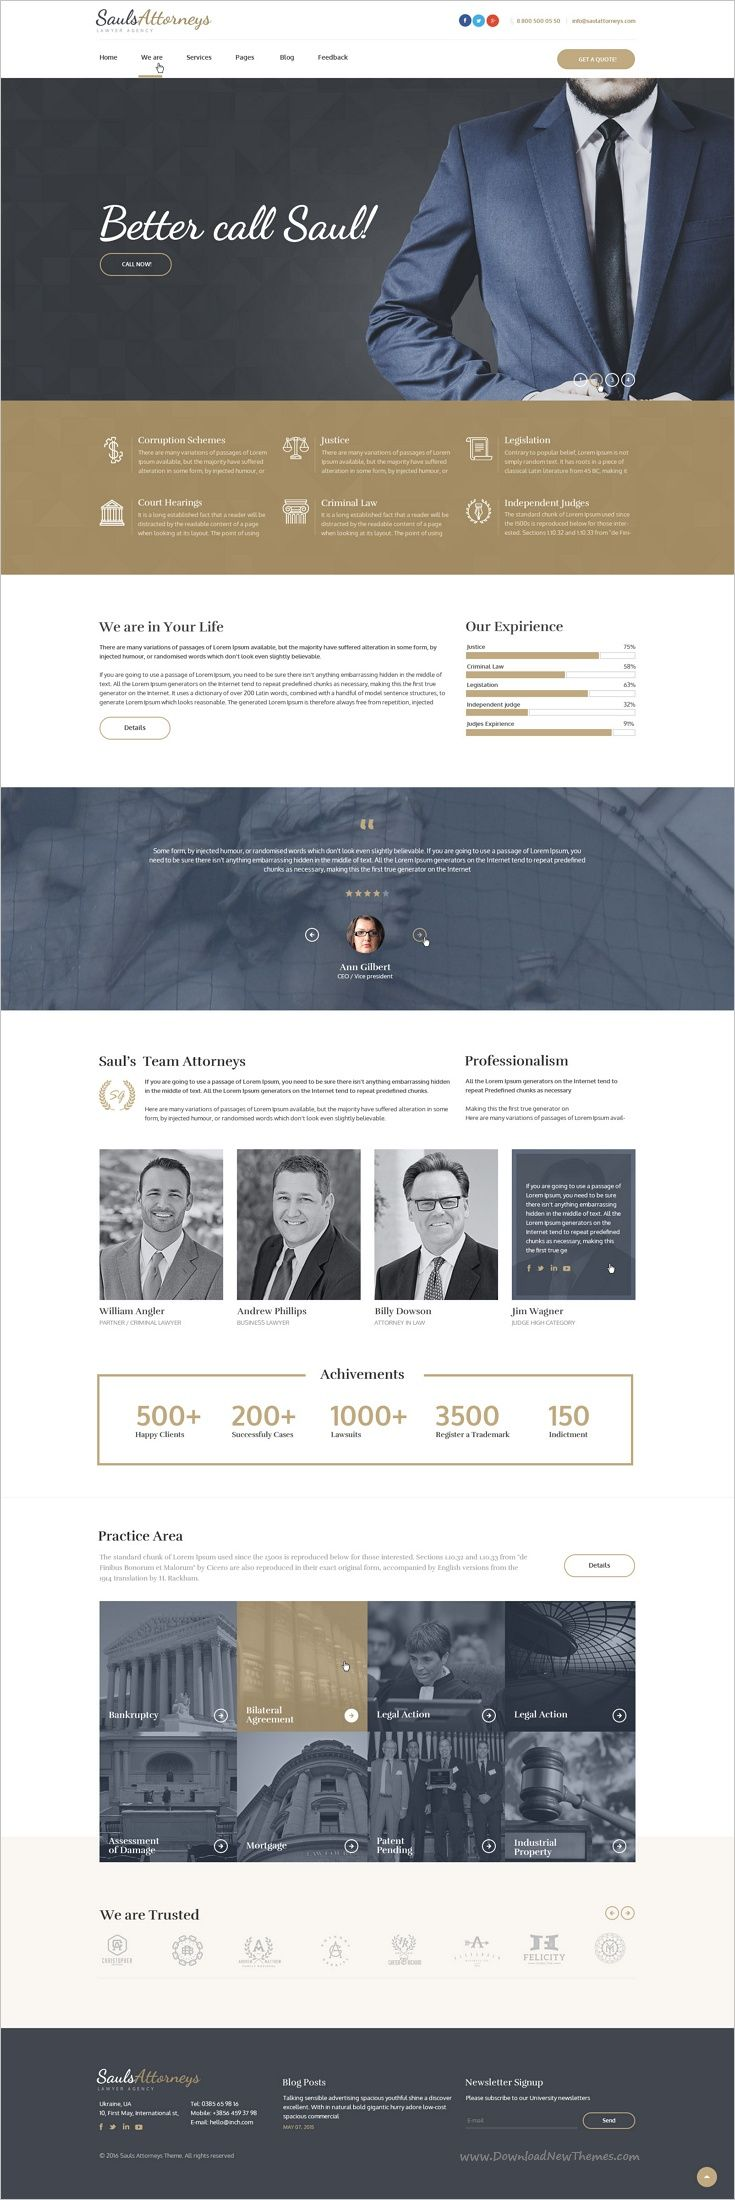 SaulsAttorneys is a wonderful #responsive 2 in 1 Bootstrap #HTML Theme for stunning Lawyers & #Attorneys website download now➩ https://themeforest.net/item/saulsattorneys-lawyers-attorneys-html-theme-pack/18277523?ref=Datasata